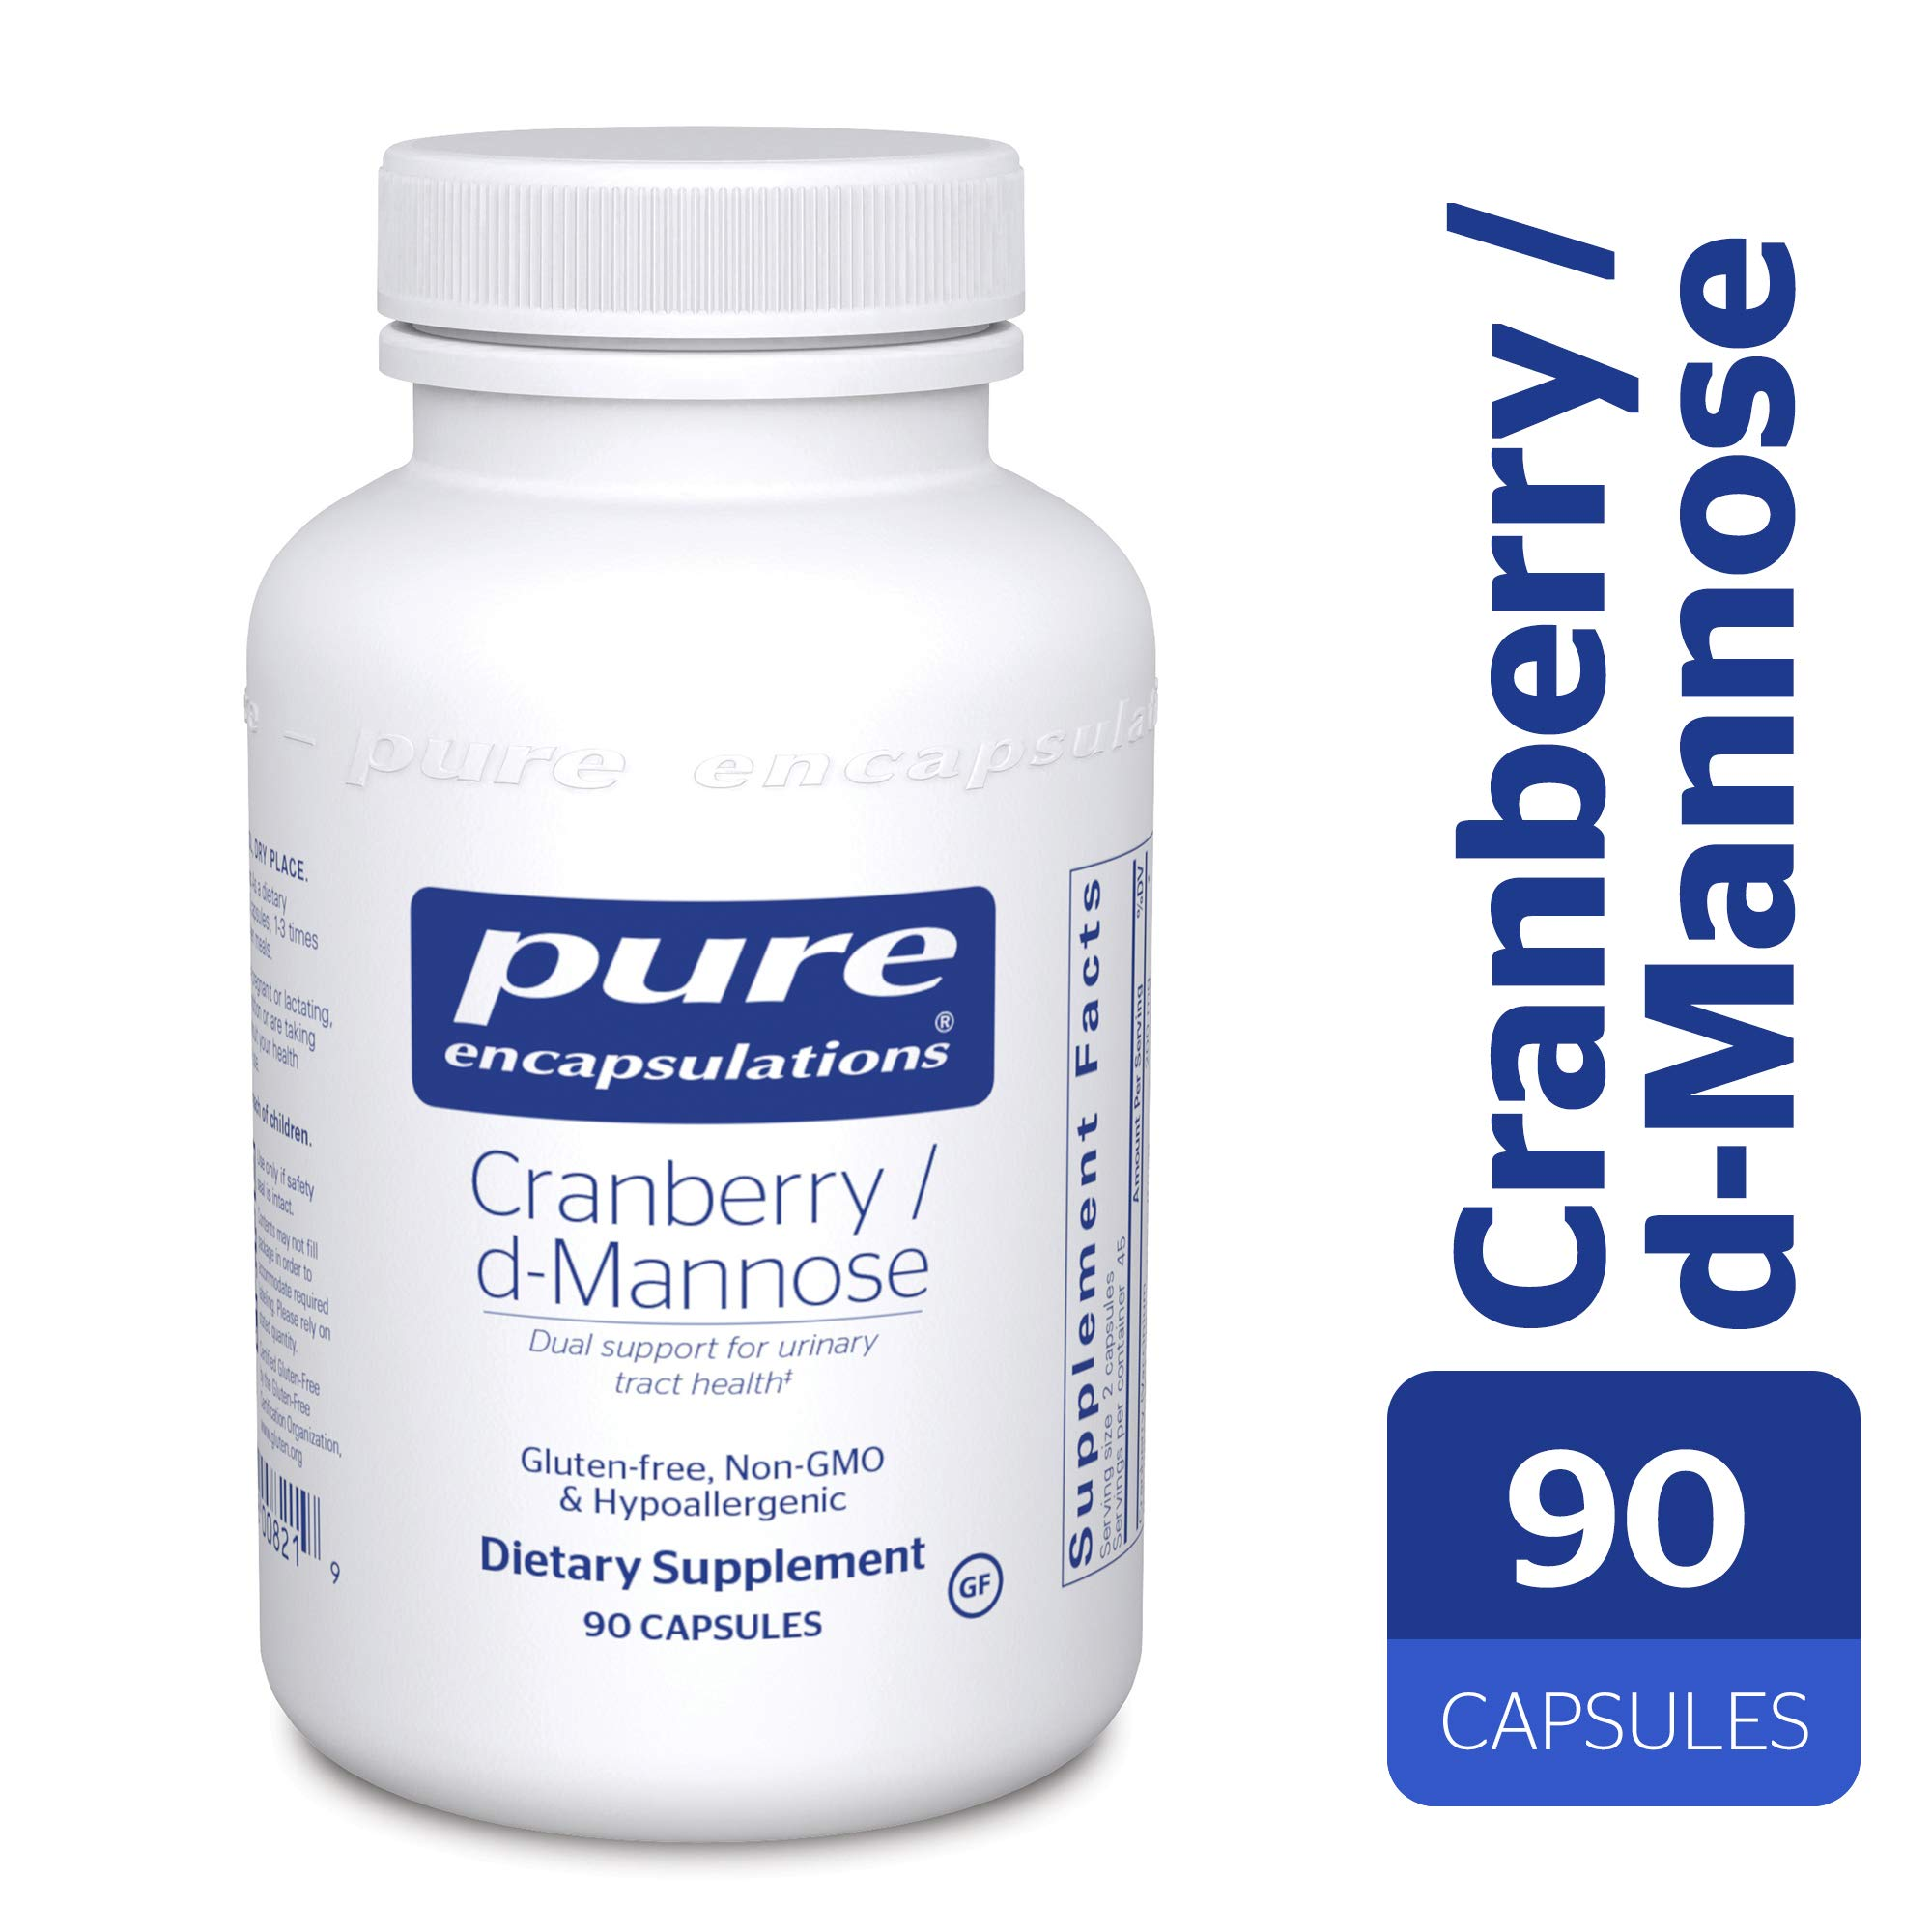 Pure Encapsulations - Cranberry/d-Mannose - Hypoallergenic Supplement to Support Urinary Tract Health* - 90 Capsules